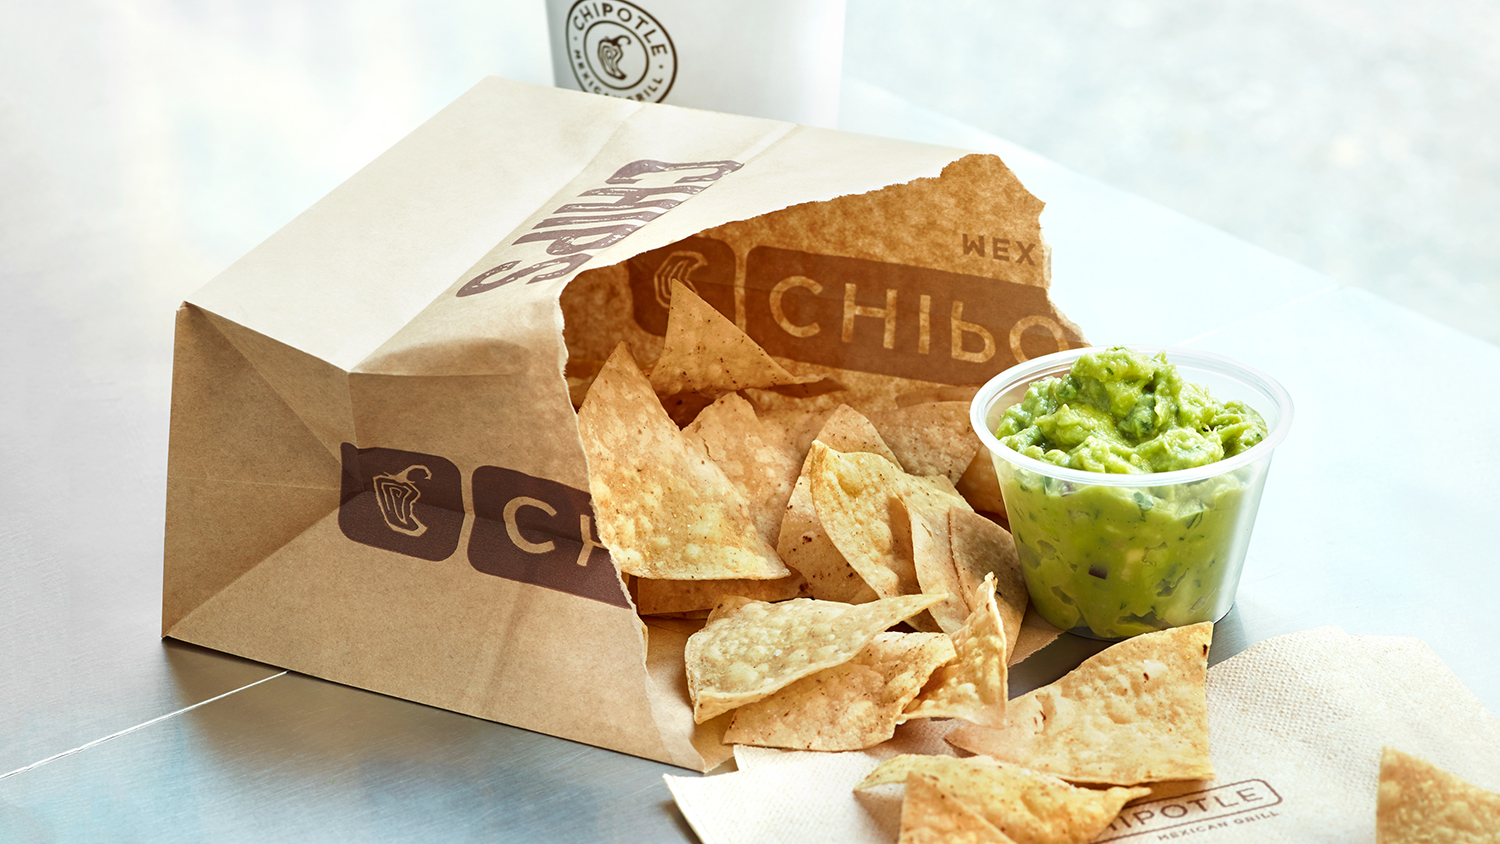 chipotle free chips and guac